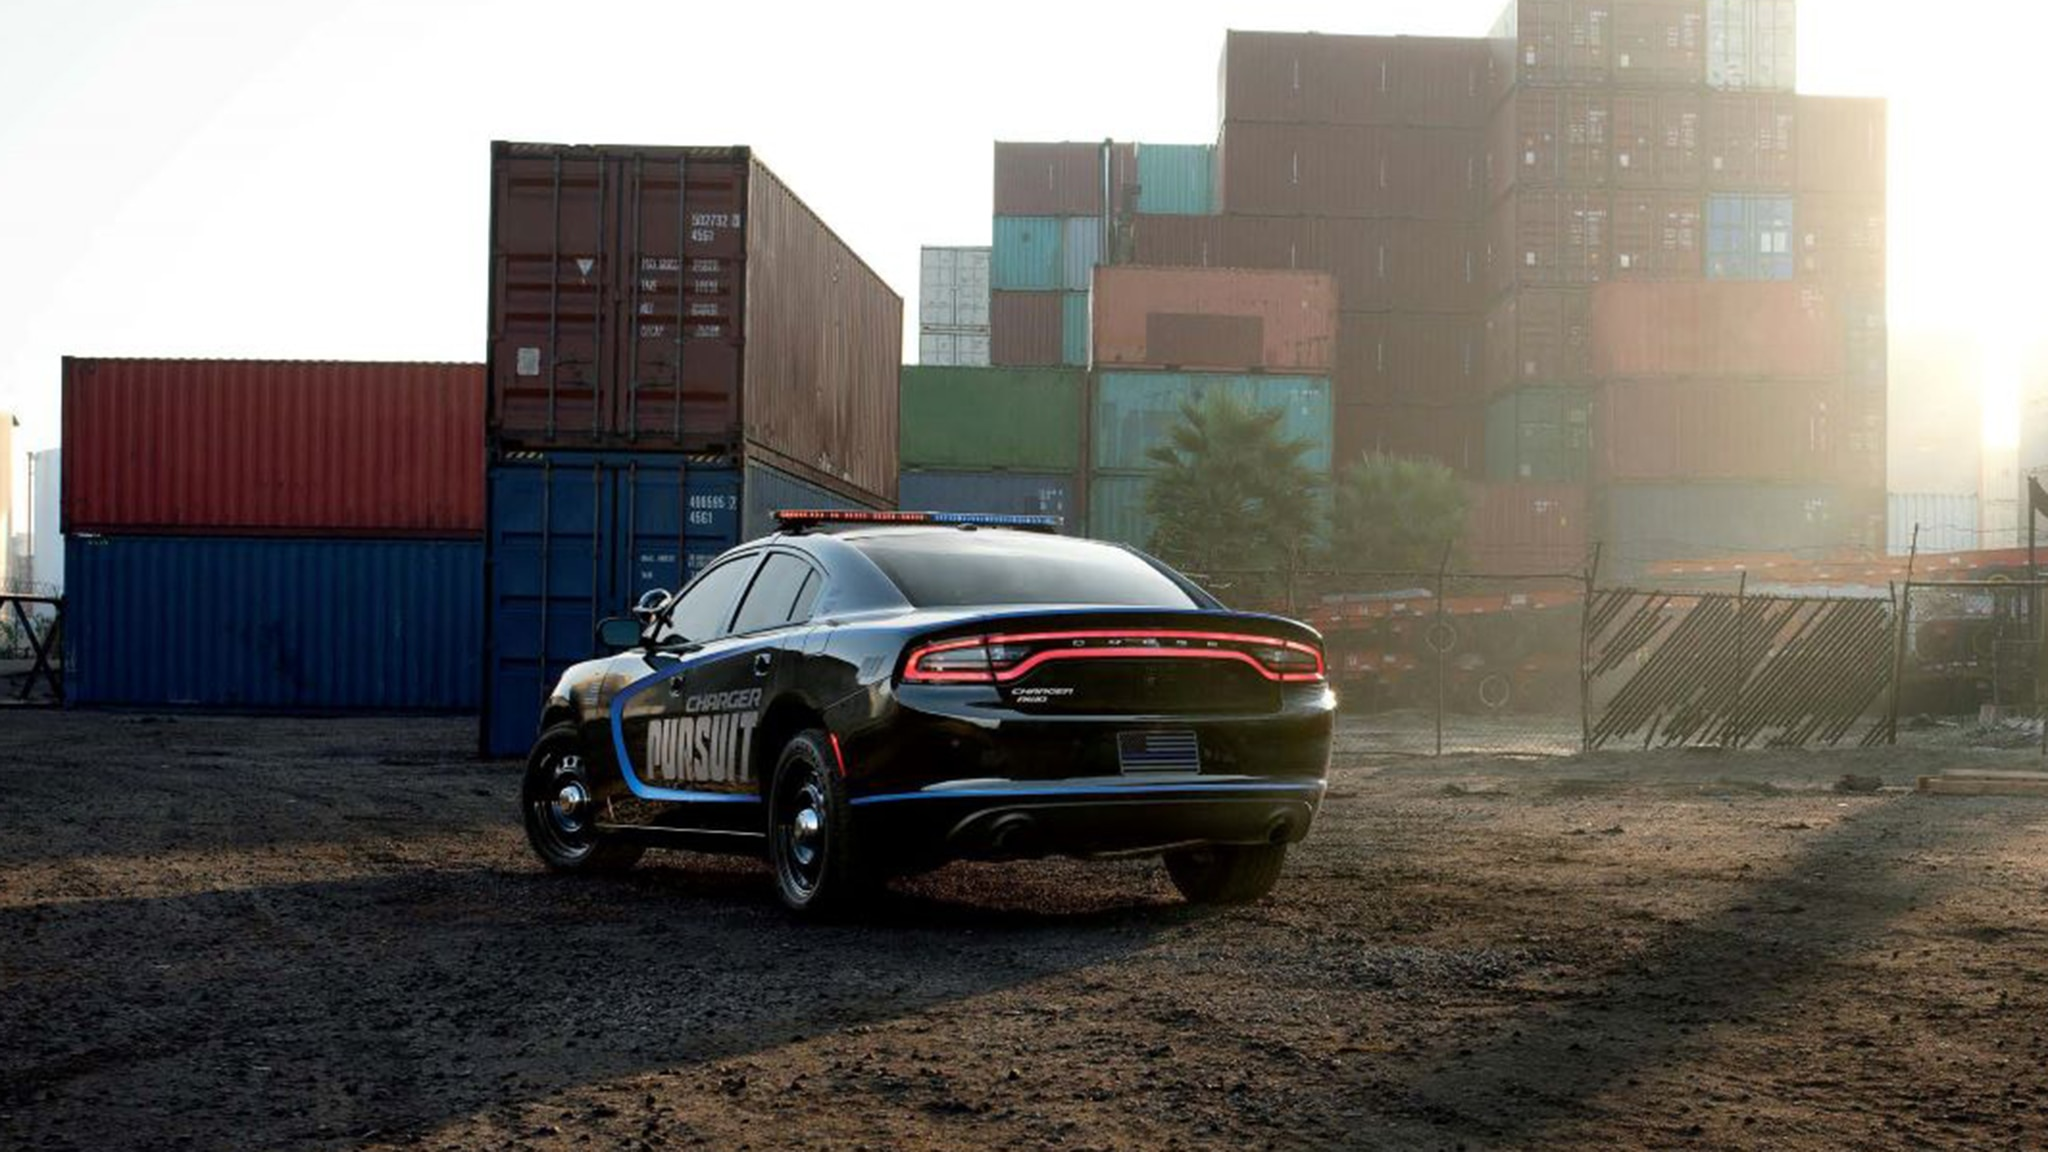 2021 Dodge Charger And Durango Pursuit Cop Cars Are Ready To Patrol